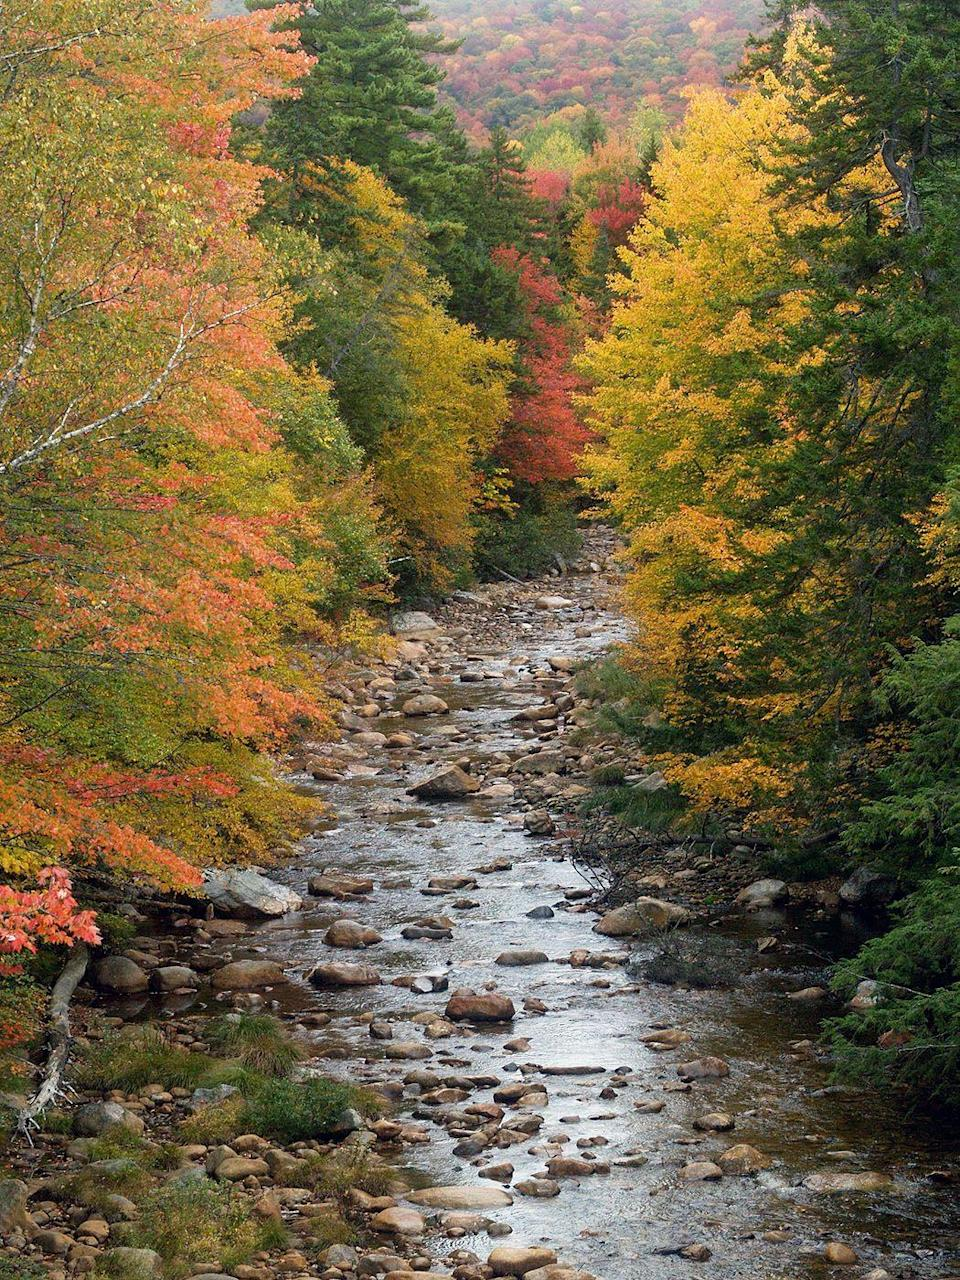 """<p><strong>The Drive: </strong><a href=""""https://www.tripadvisor.com/Attraction_Review-g46186-d104262-Reviews-Kancamagus_Highway-North_Conway_Conway_New_Hampshire.html"""" rel=""""nofollow noopener"""" target=""""_blank"""" data-ylk=""""slk:Kancamagus Scenic Byway"""" class=""""link rapid-noclick-resp"""">Kancamagus Scenic Byway</a></p><p><strong>The Scene: </strong>The best place to begin your drive on the """"Kanc"""" is in <a href=""""https://www.tripadvisor.com/Tourism-g46140-Lincoln_New_Hampshire-Vacations.html"""" rel=""""nofollow noopener"""" target=""""_blank"""" data-ylk=""""slk:Lincoln"""" class=""""link rapid-noclick-resp"""">Lincoln</a>, where you'll follow the twists and turns to an elevation of just under 3,000 feet before descending to the town of <a href=""""https://www.tripadvisor.com/Tourism-g46054-Conway_New_Hampshire-Vacations.html"""" rel=""""nofollow noopener"""" target=""""_blank"""" data-ylk=""""slk:Conway"""" class=""""link rapid-noclick-resp"""">Conway</a>. Along the way, you'll be surrounded by nature in the heart of the <a href=""""https://www.tripadvisor.com/Attraction_Review-g28950-d106625-Reviews-White_Mountain_National_Forest-New_Hampshire.html"""" rel=""""nofollow noopener"""" target=""""_blank"""" data-ylk=""""slk:White Mountain National Forest"""" class=""""link rapid-noclick-resp"""">White Mountain National Forest</a>, filled with scenic overlooks. </p><p><strong>The Pit-Stop: </strong>Stop to hike through the trees and rivers of the <a href=""""https://www.tripadvisor.com/Tourism-g659478-White_Mountains_New_Hampshire-Vacations.html"""" rel=""""nofollow noopener"""" target=""""_blank"""" data-ylk=""""slk:White Mountains"""" class=""""link rapid-noclick-resp"""">White Mountains</a>.</p>"""